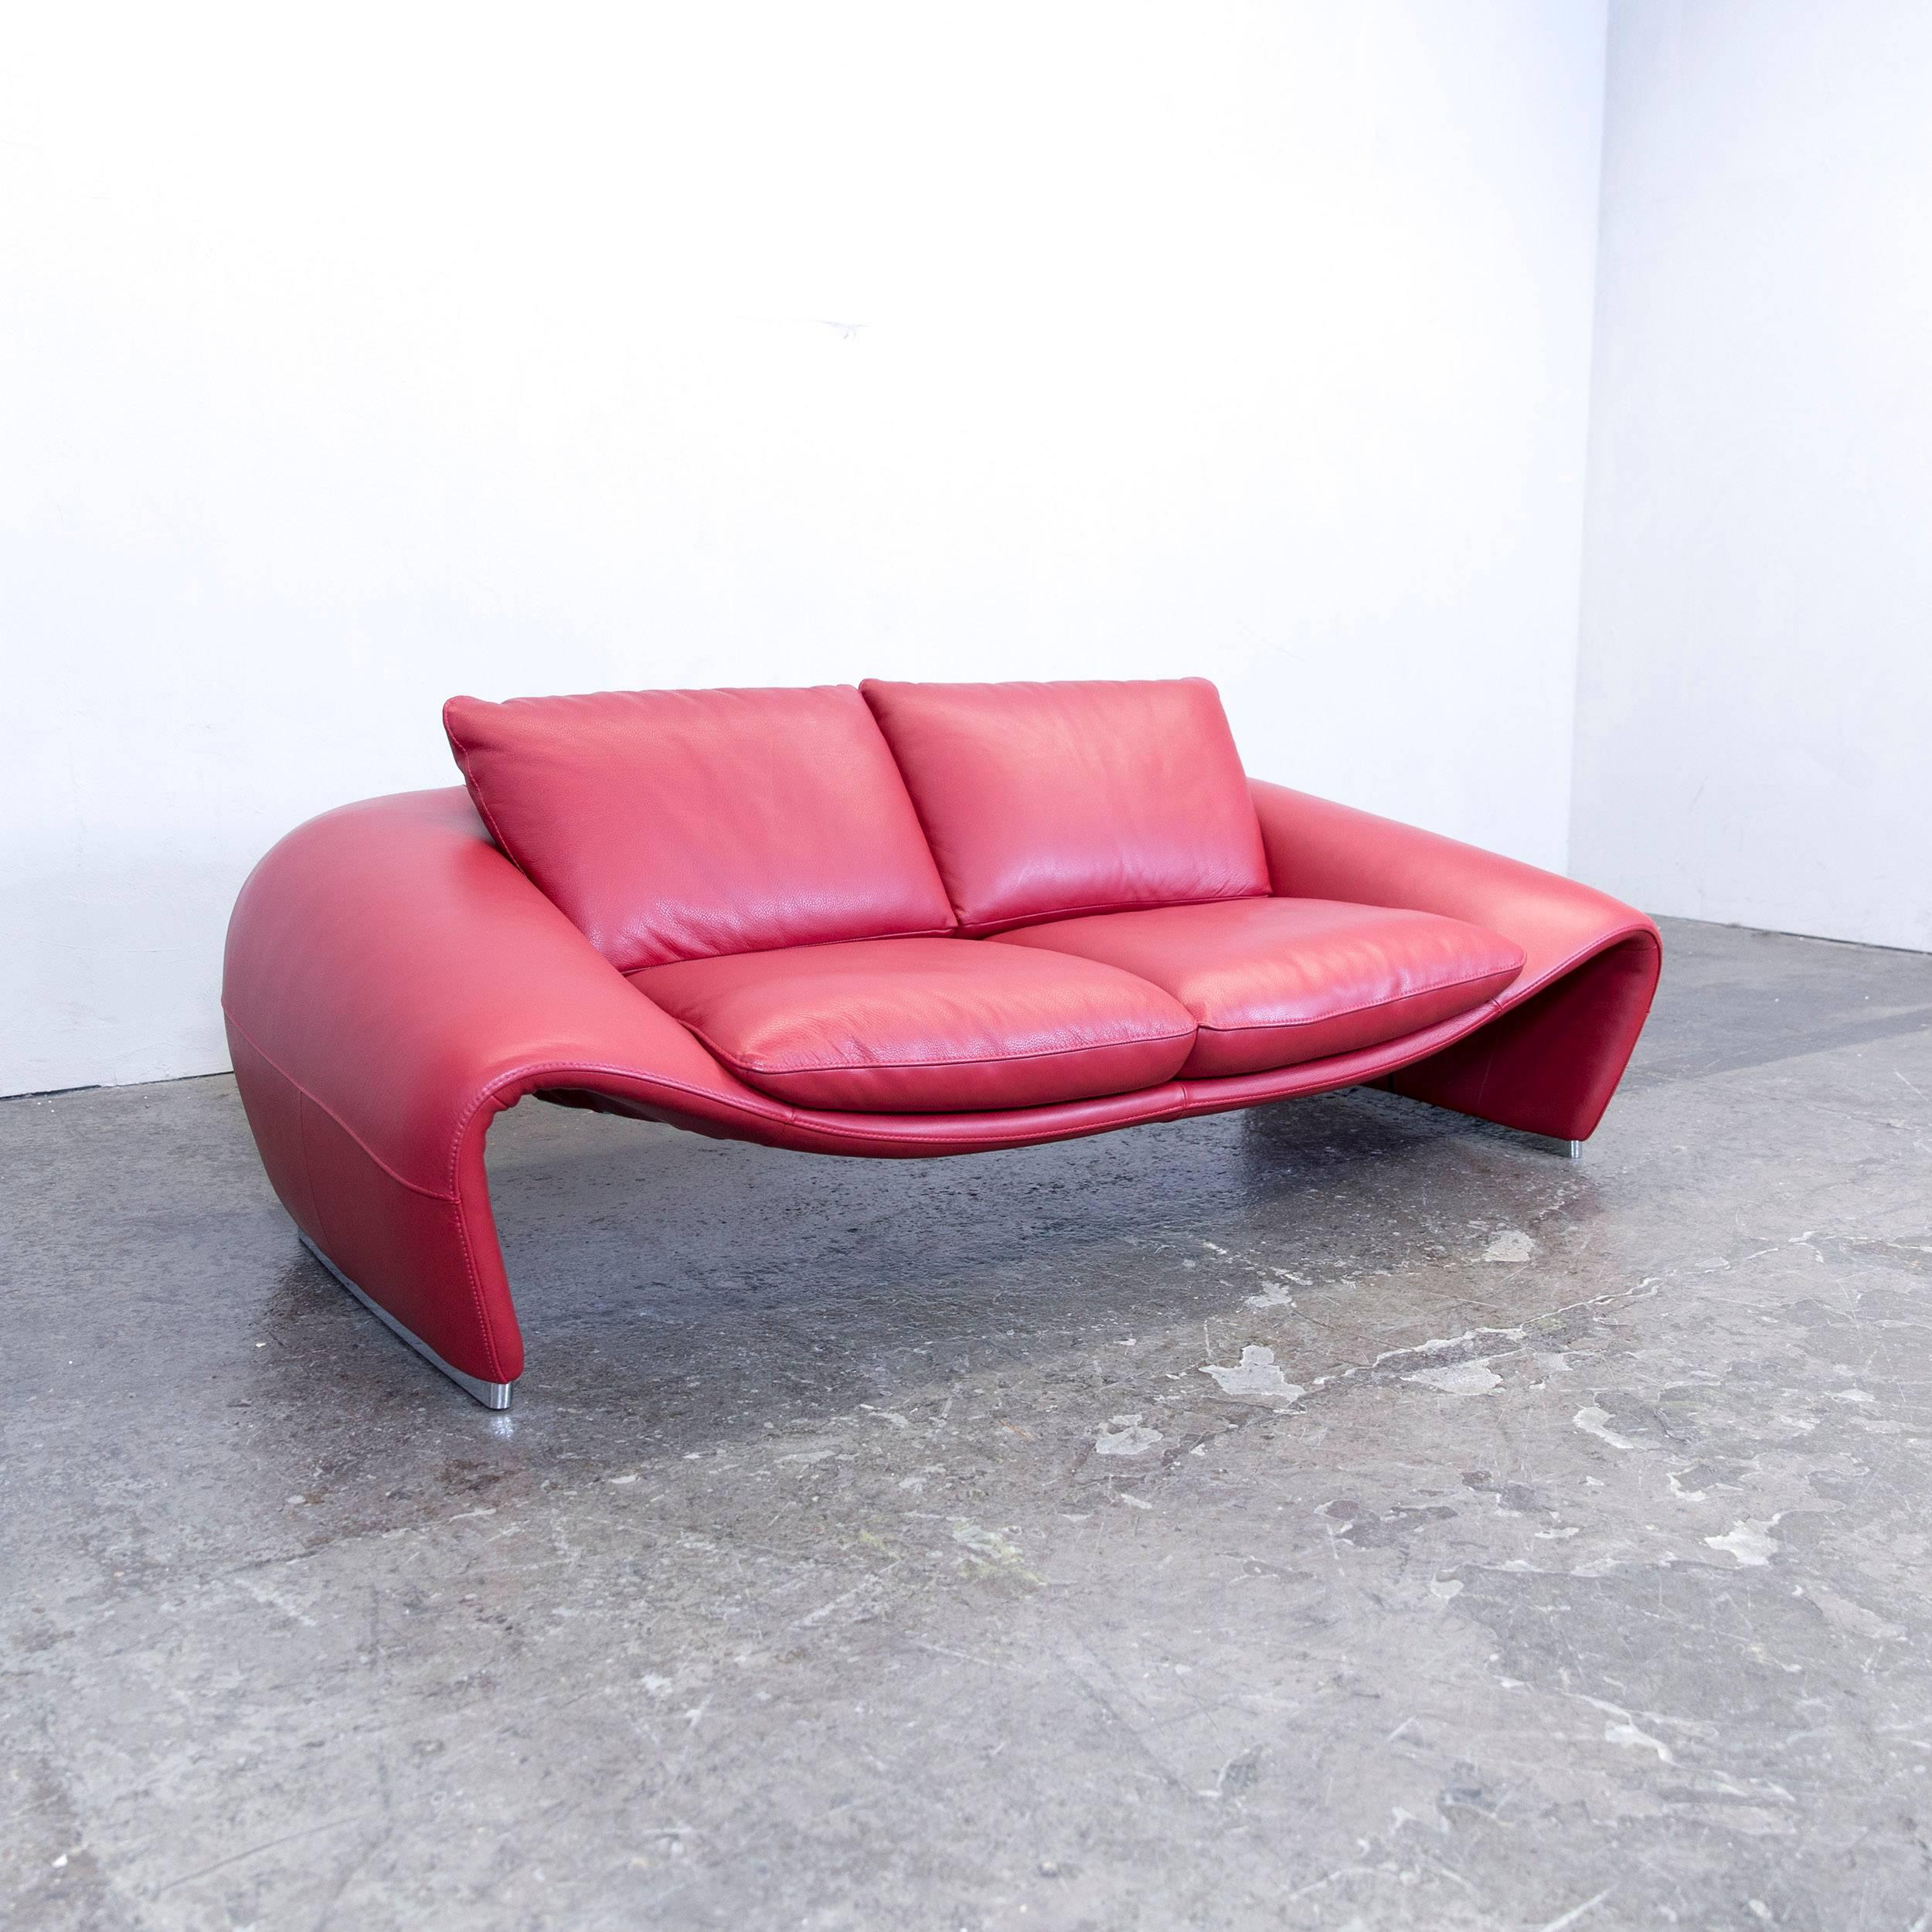 Chateau Du0027Ax Voga Designer Sofa Leather Red Three Seat Function Couch  Modern In